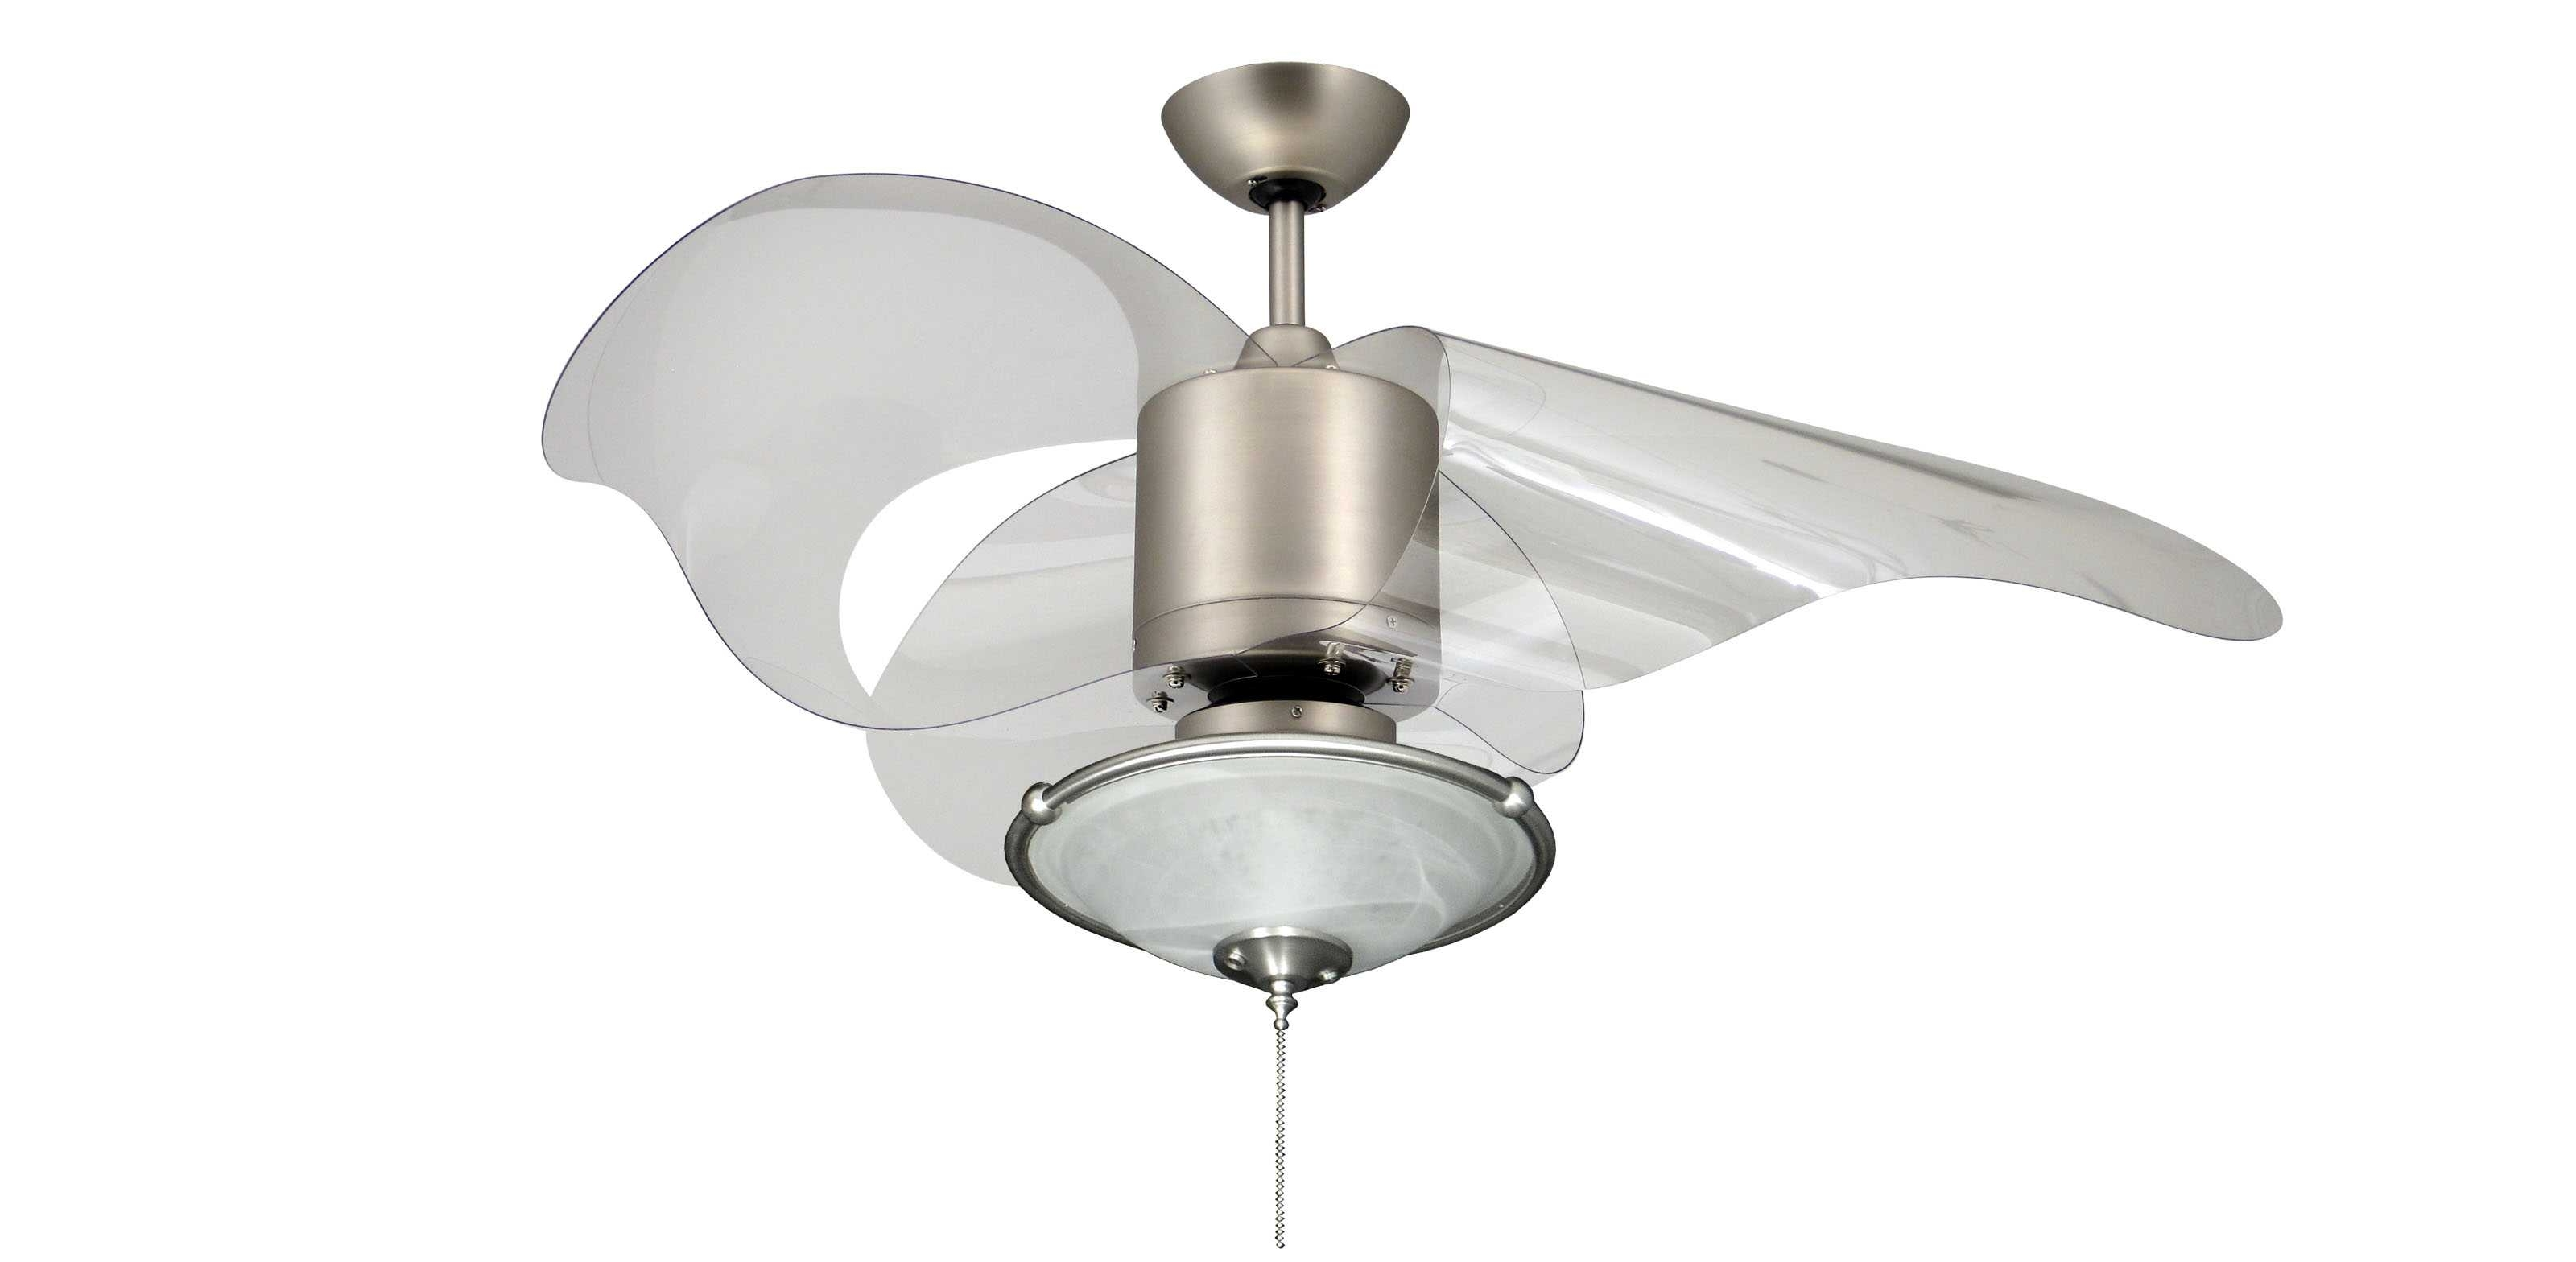 Small Outdoor Ceiling Fans With Lights Intended For Favorite Interesting I Small Outdoor Ceiling Fan With Light 2018 Ceiling (View 14 of 20)